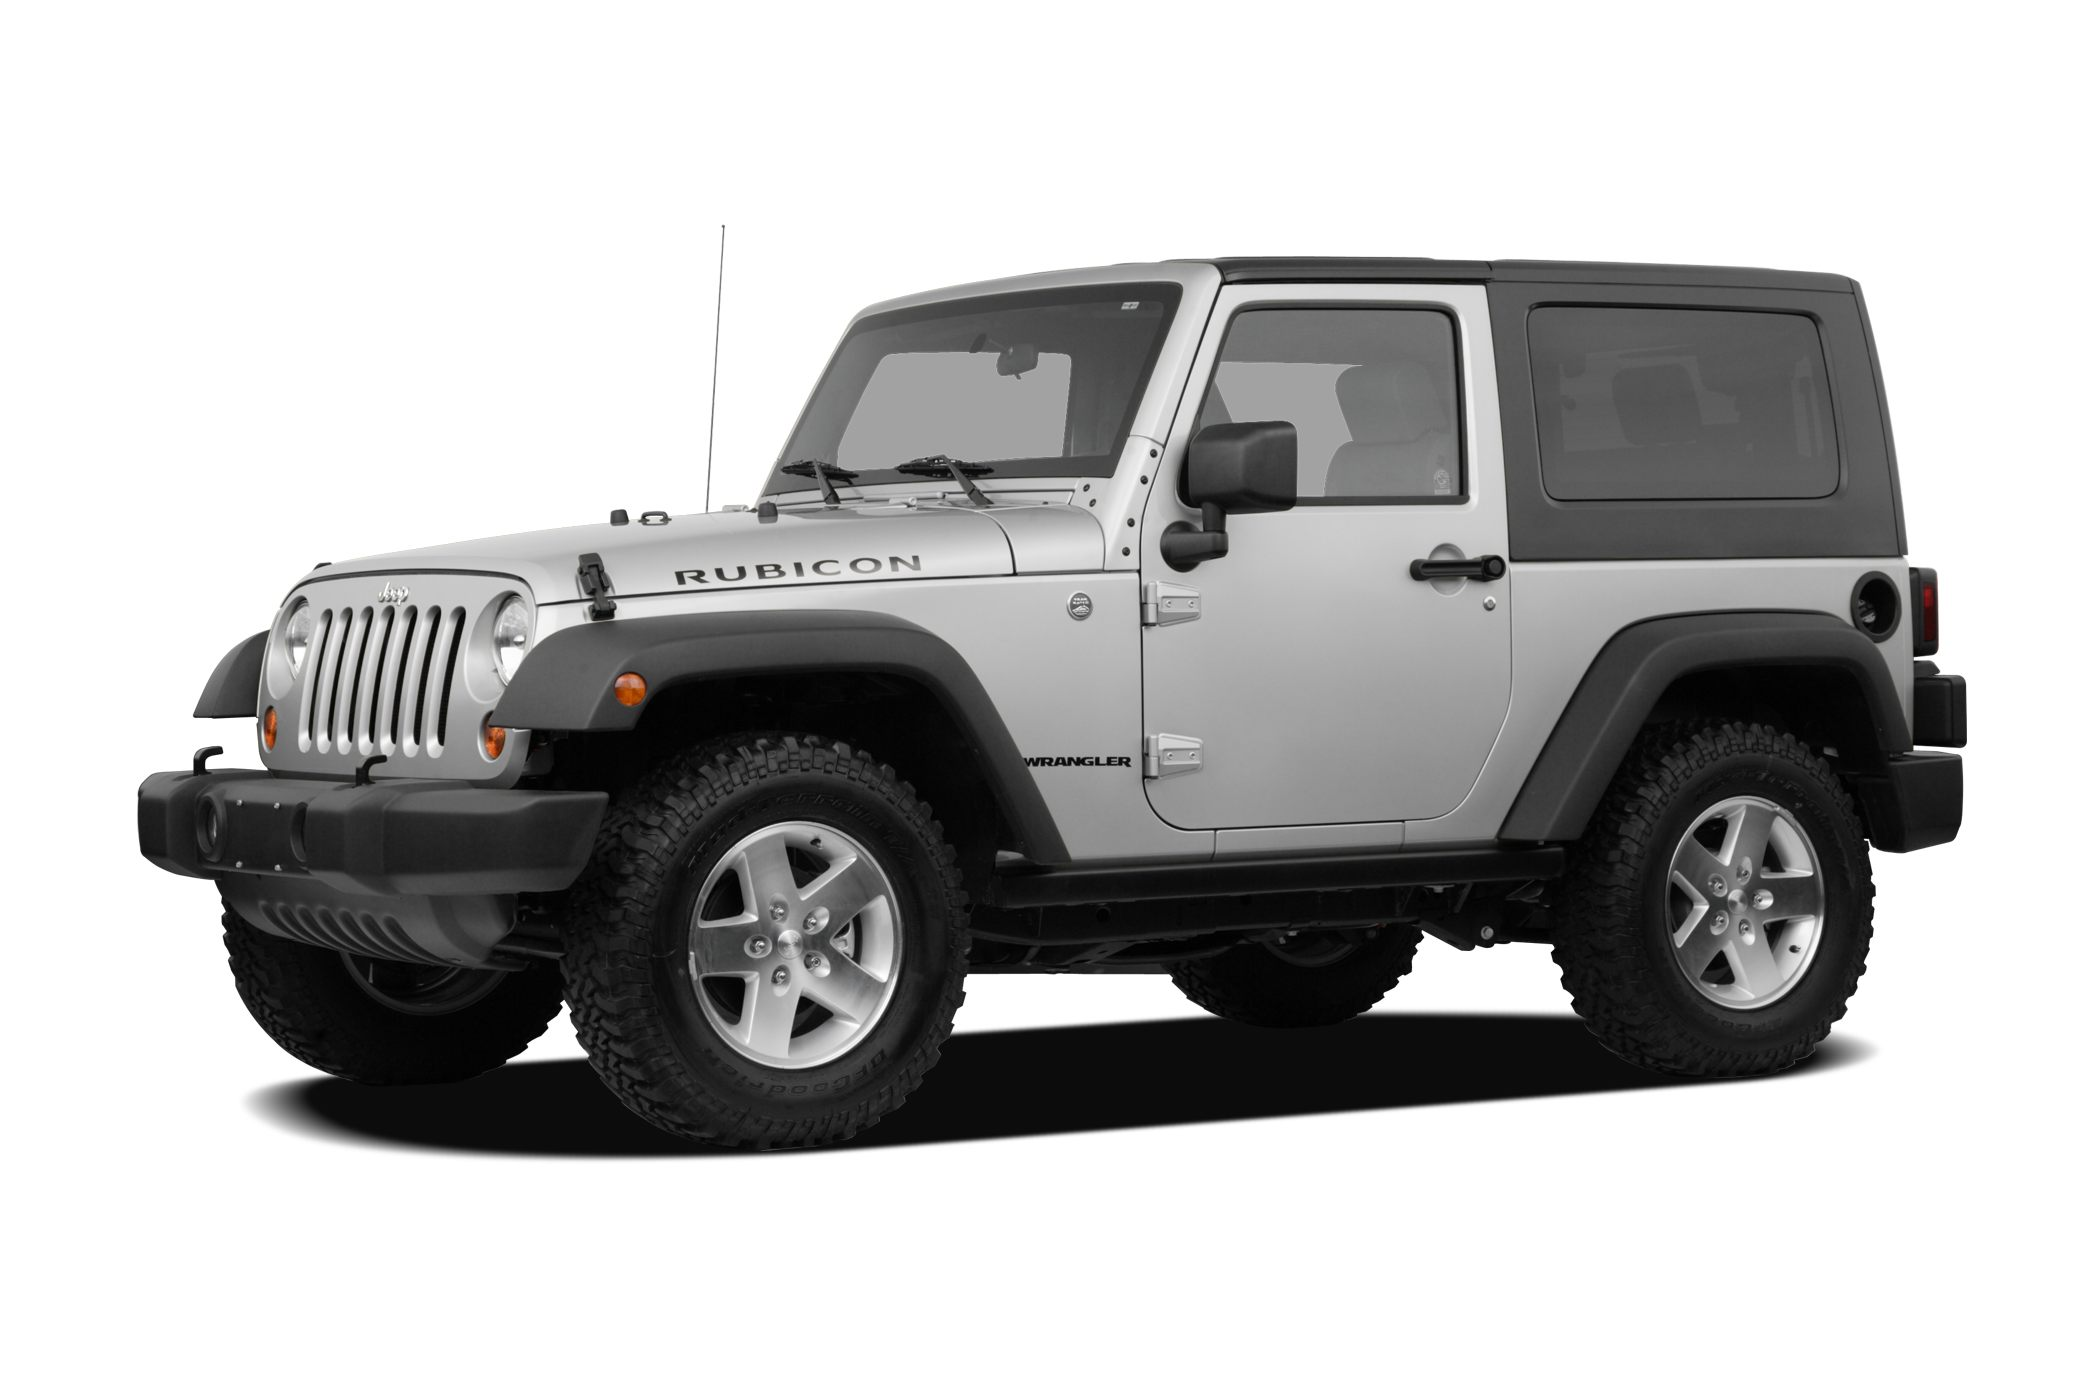 2007 Jeep Wrangler Sahara Just In  Ready for Some FUN Grab a Deal on this 2007 Jeep Wrangler